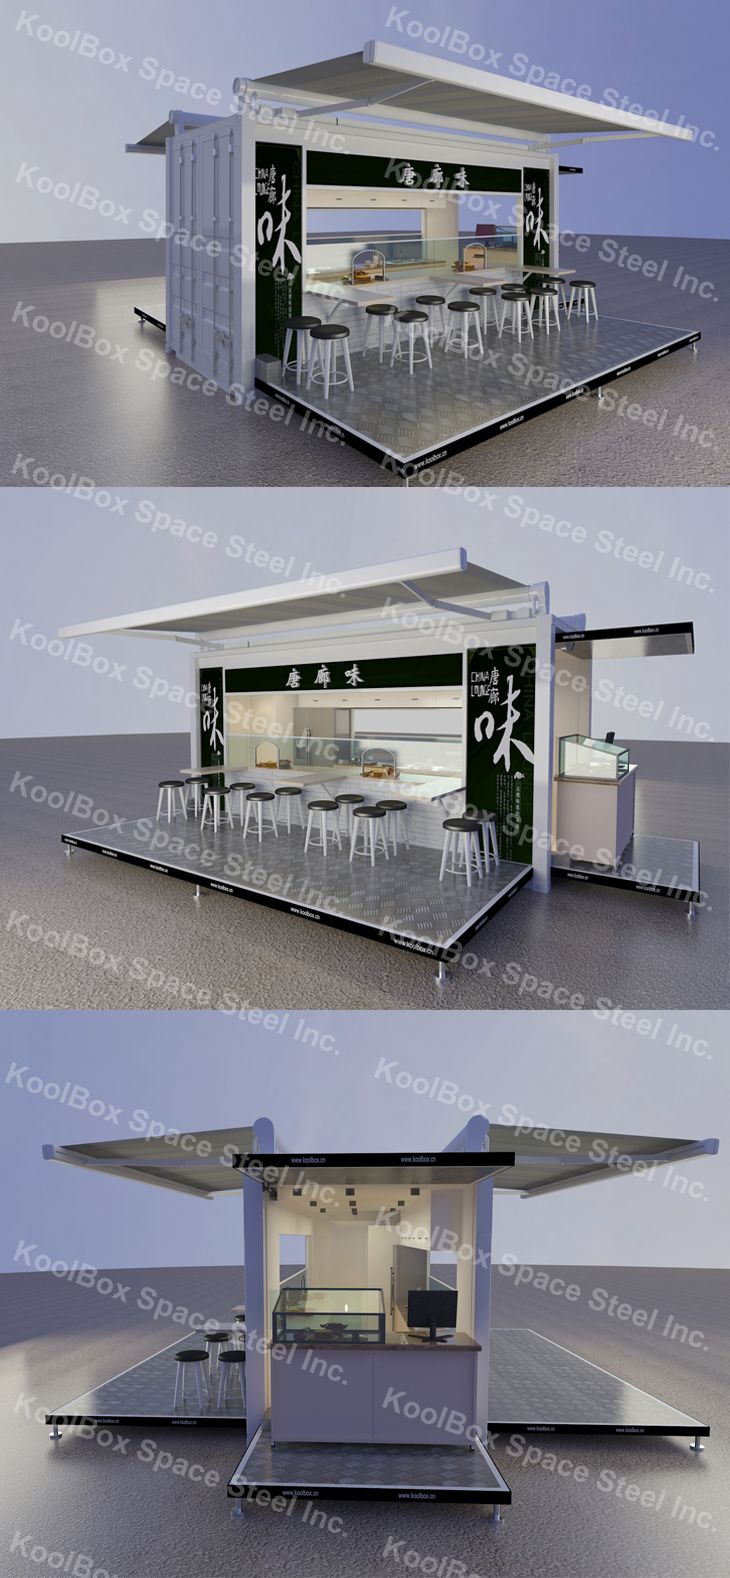 Koolbox container outdoor food kiosk, mobile food kiosk design,mobile fast food kiosk container for sale